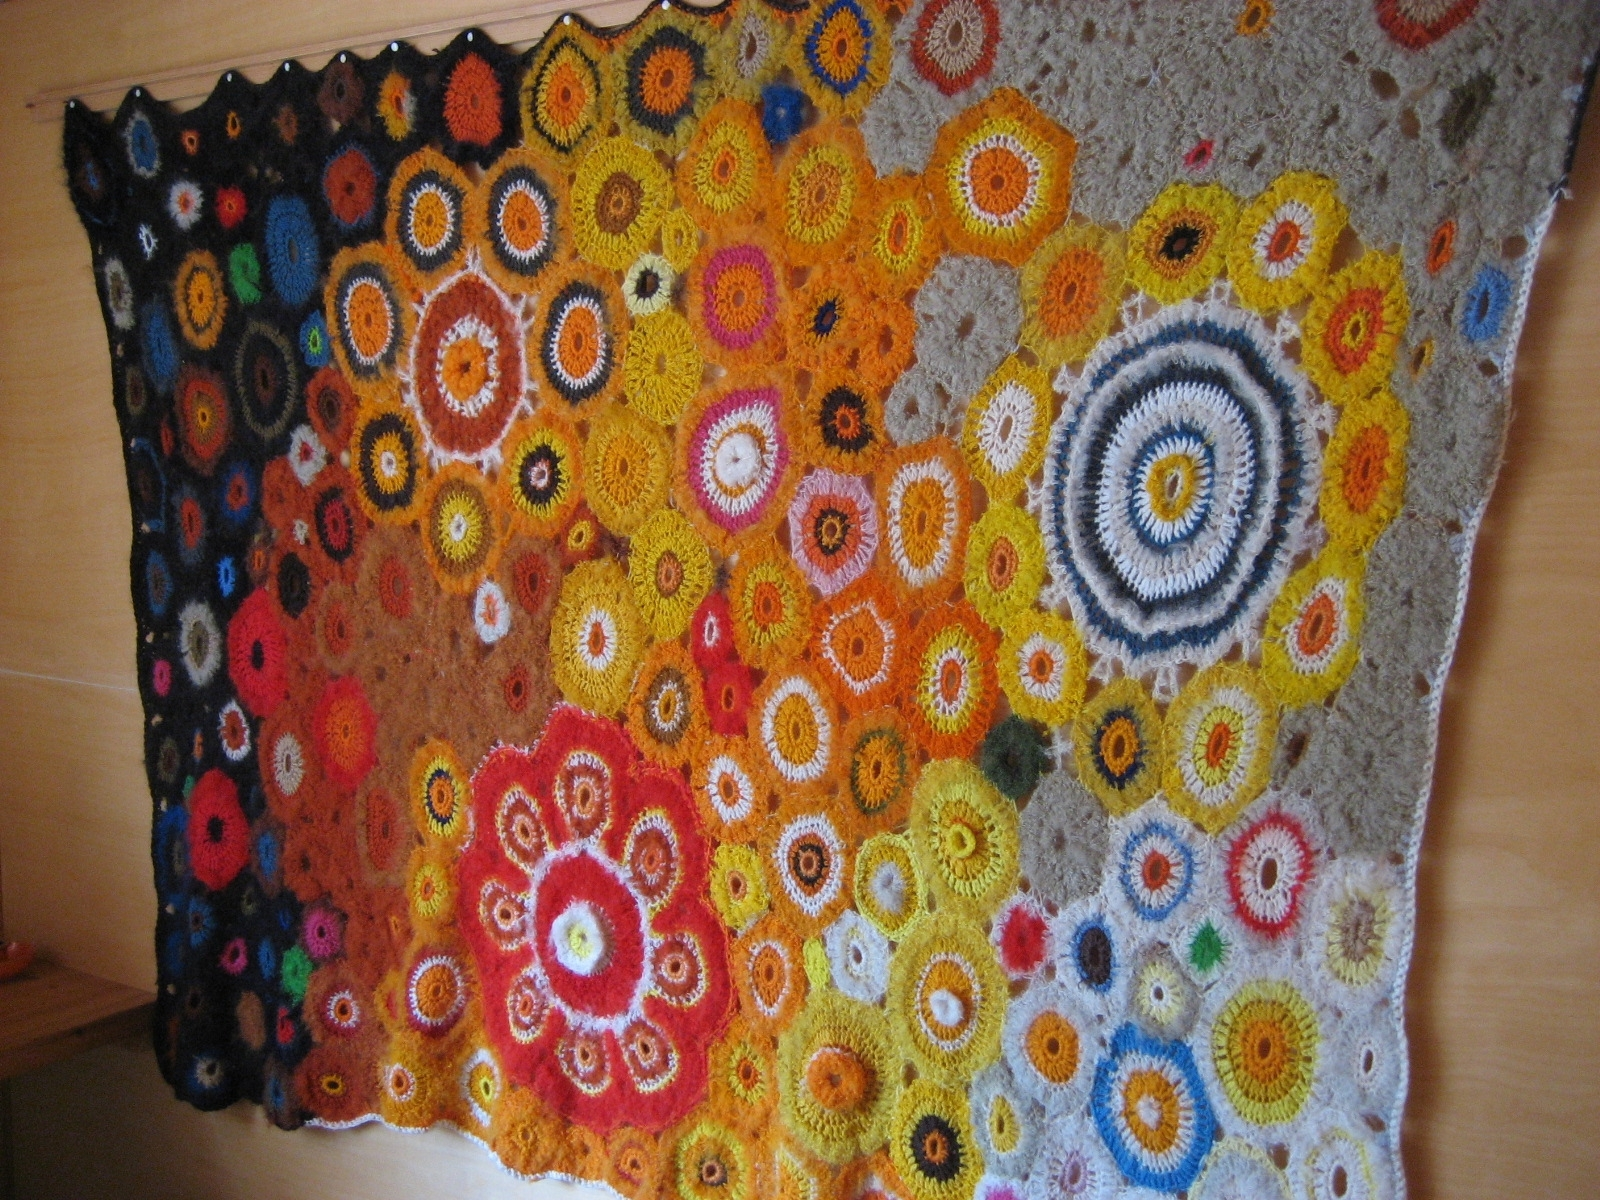 Crochet Wall Hanging | Nero's Post And Patch I (2010 2012) In Recent Crochet Wall Art (View 4 of 20)